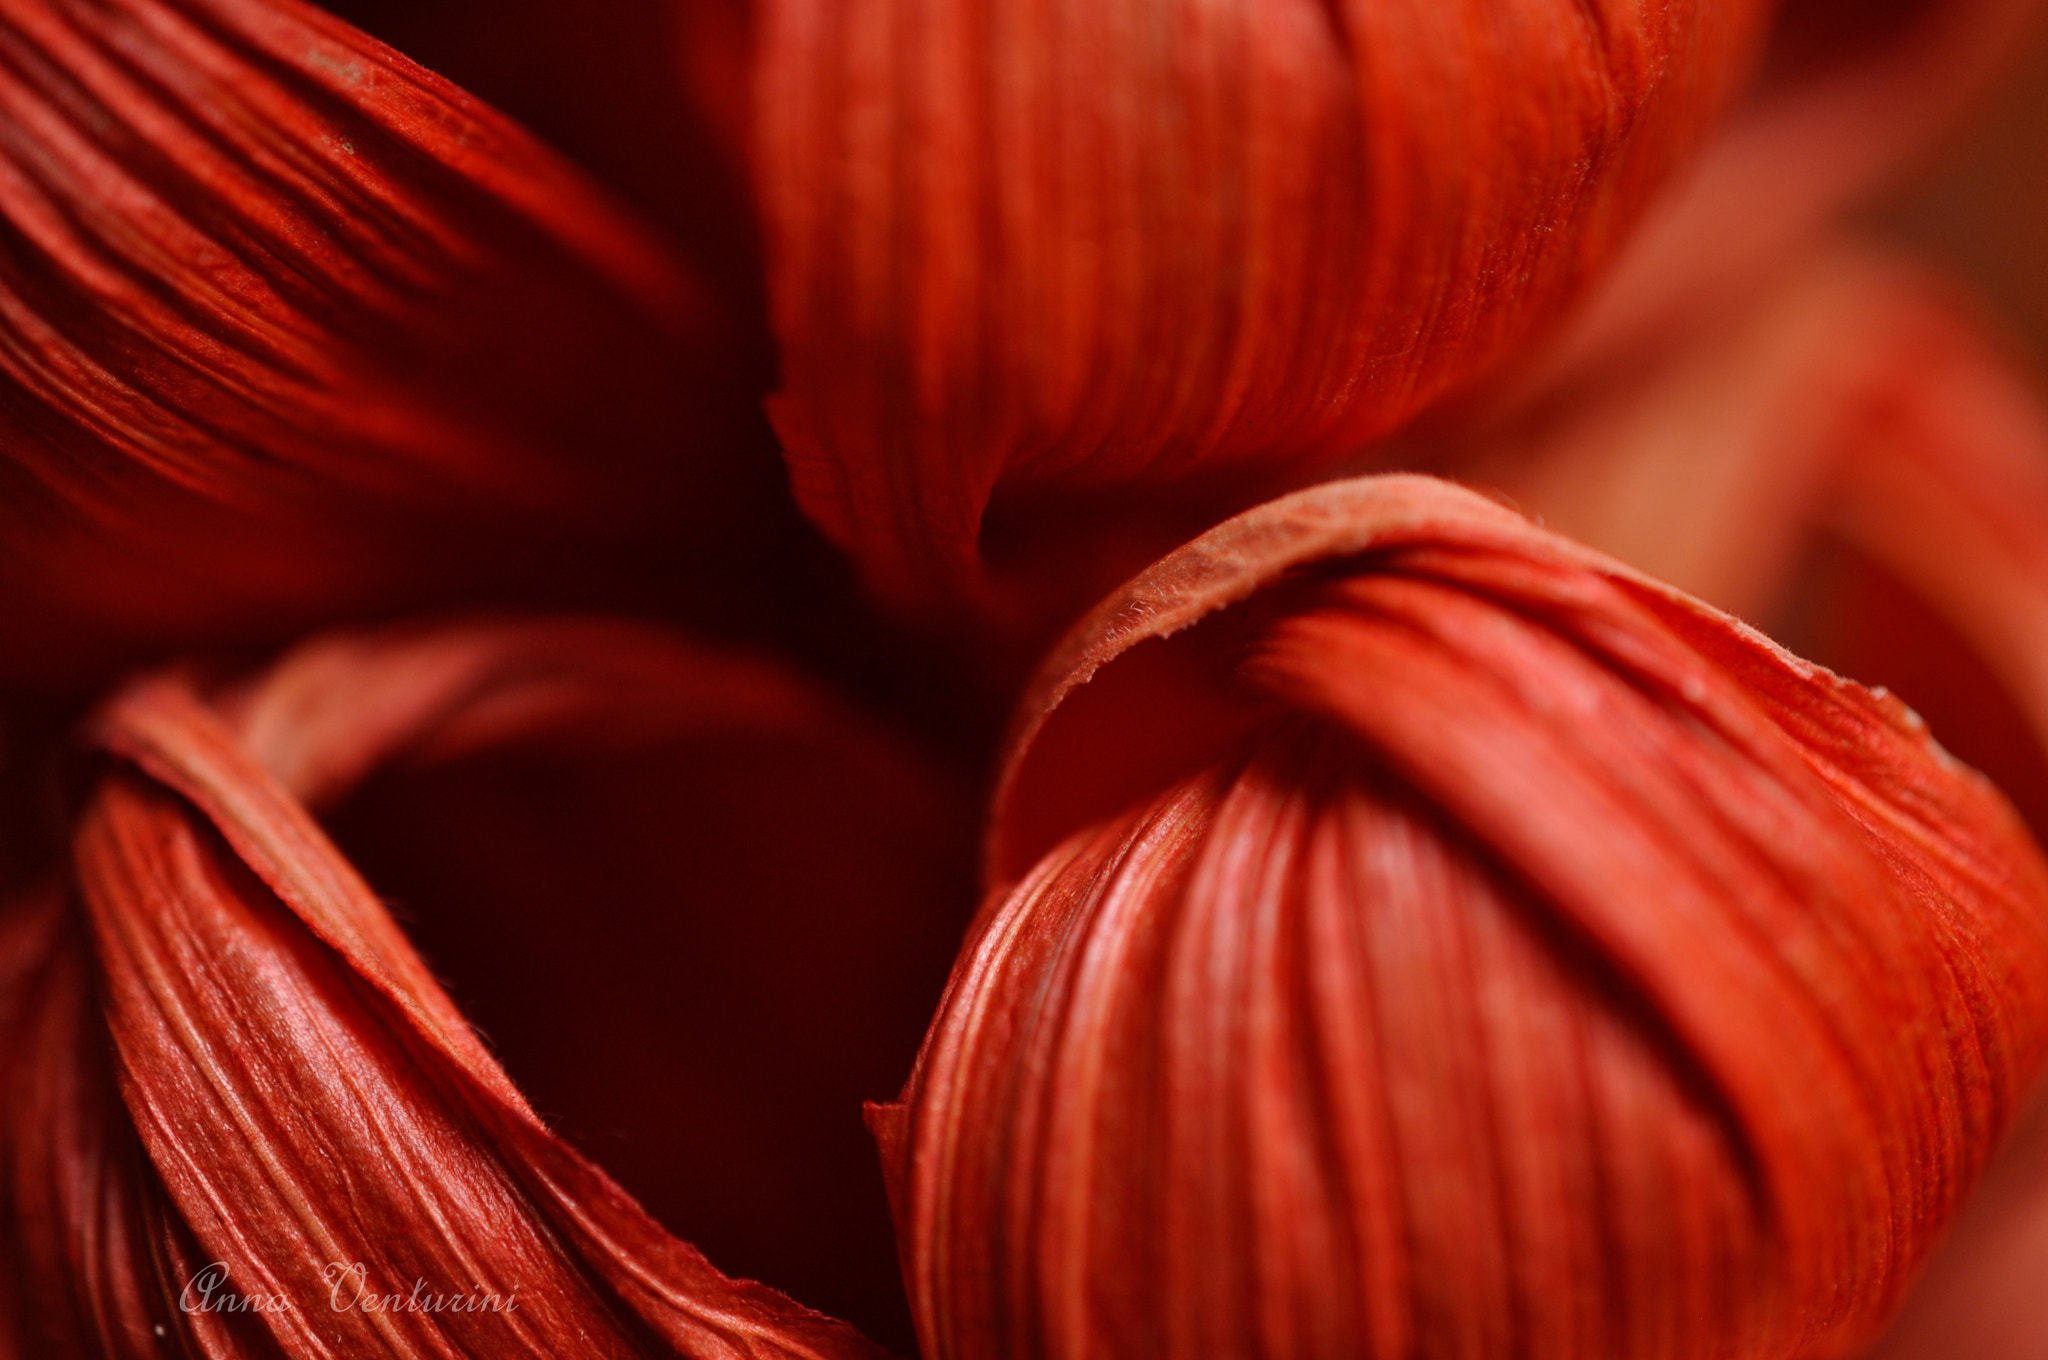 Photograph Details 3 by Anna Venturini on 500px